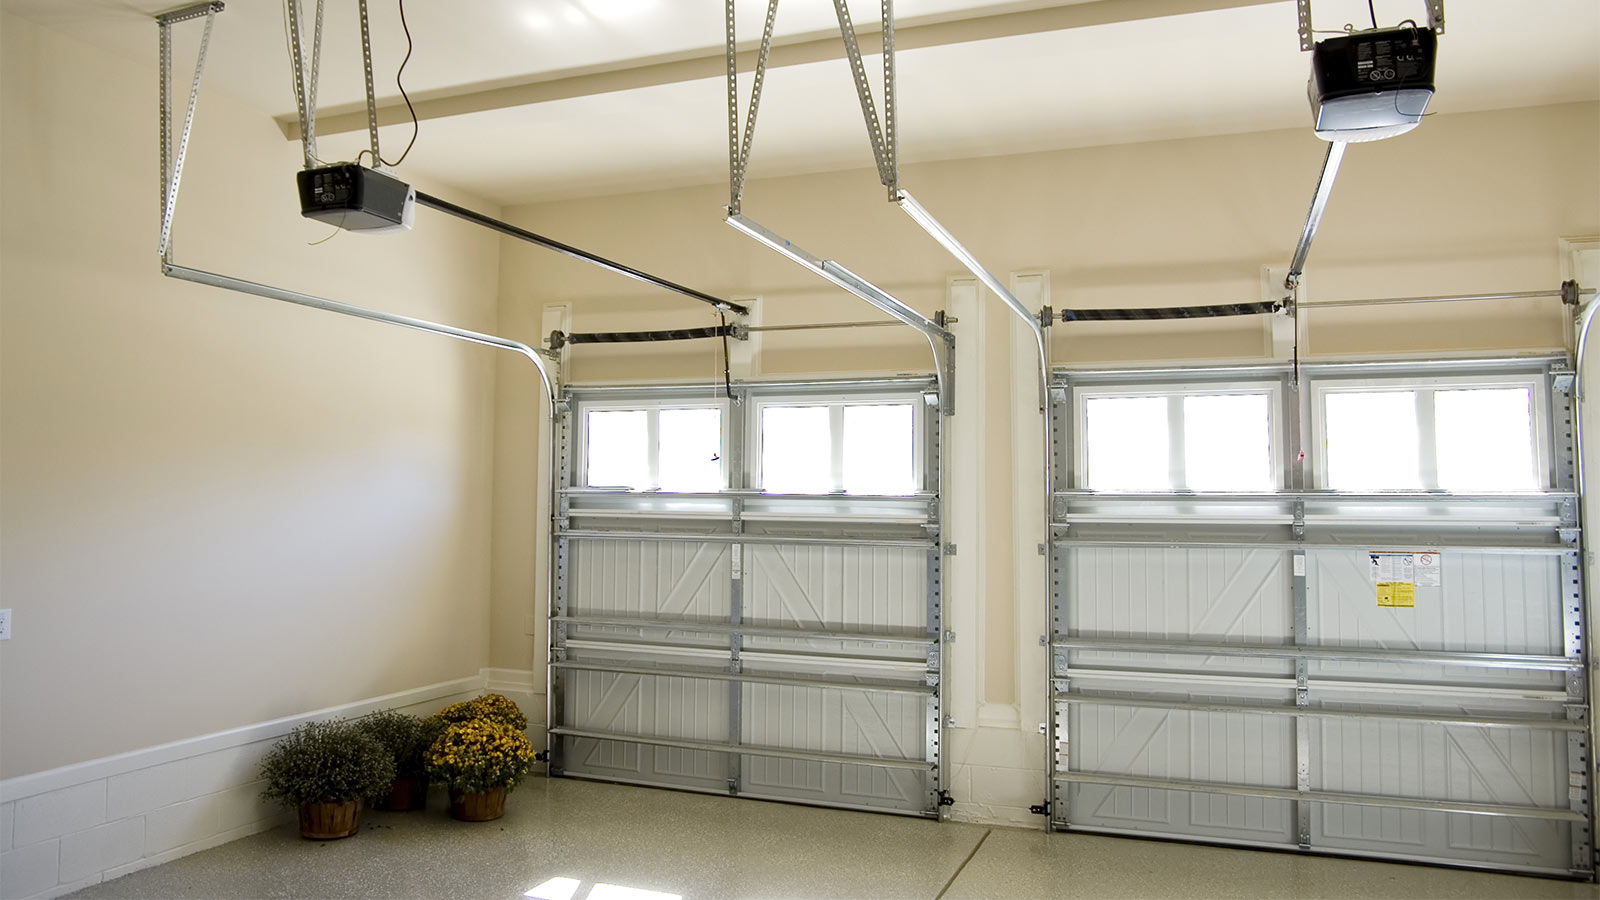 Sectional Garage Doors from Security Gates Harlow suppliers.